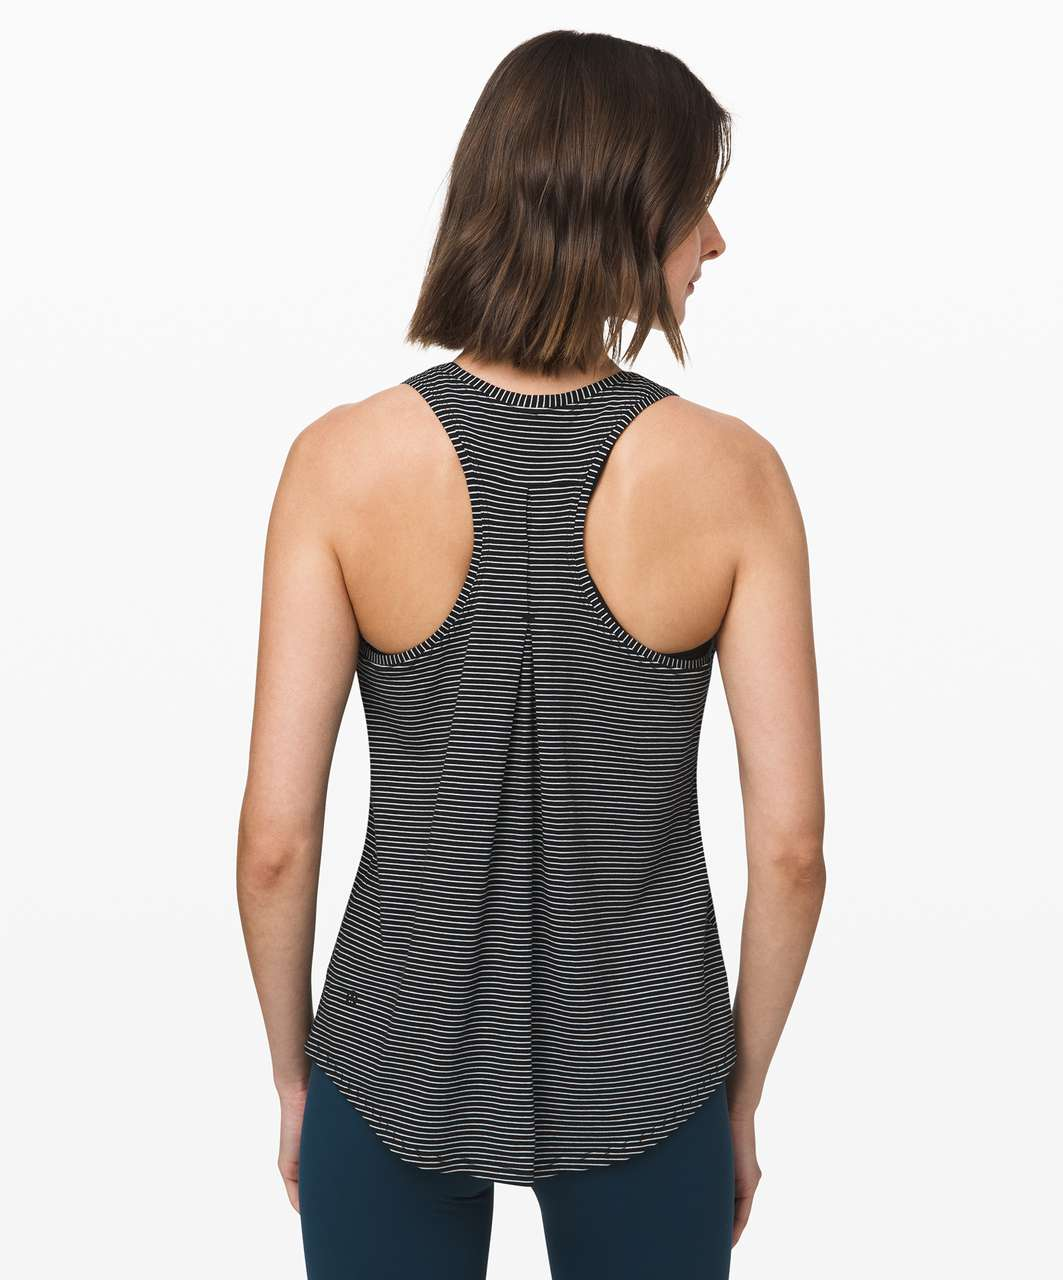 Lululemon Love Tank *Pleated - Hype Stripe Black White (First Release)